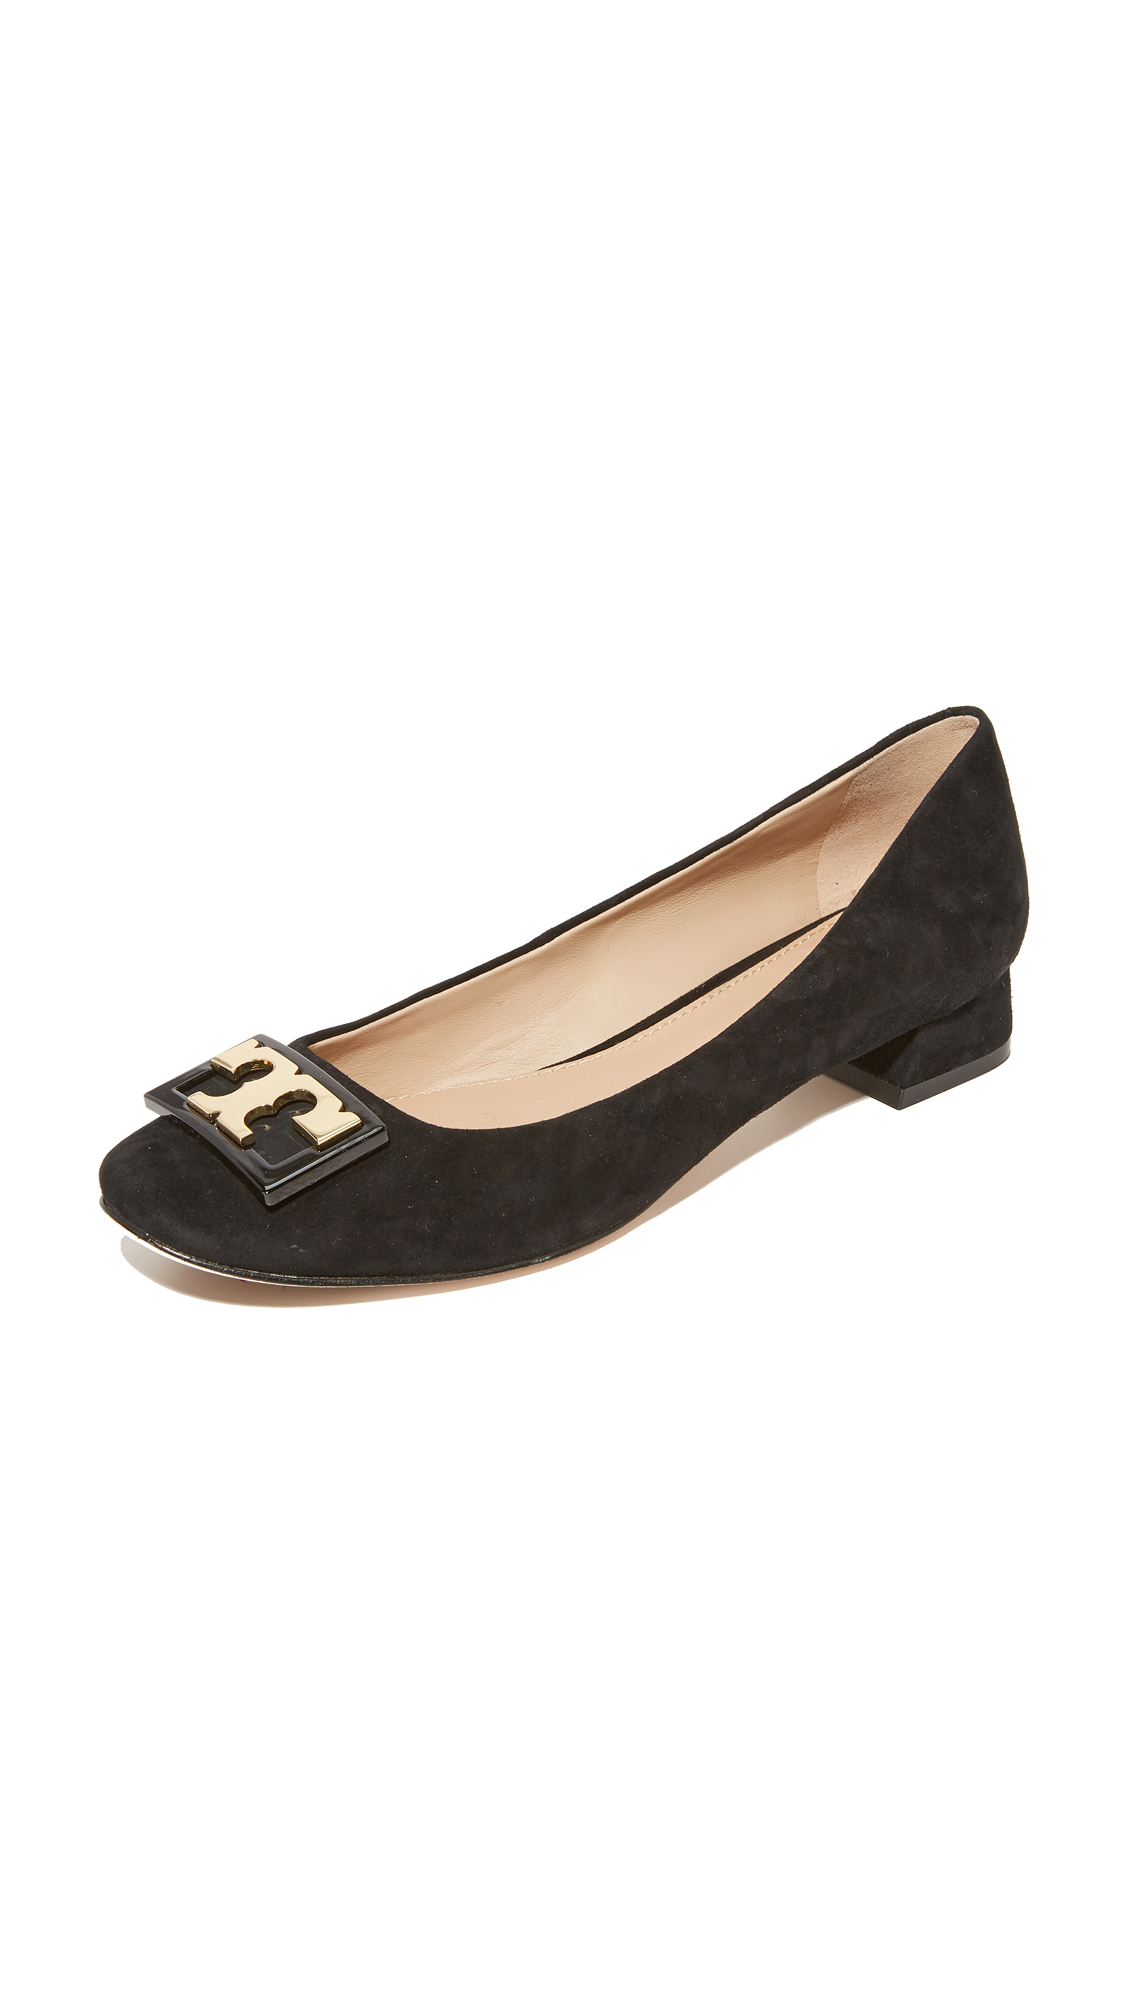 Tory Burch Gigi Suede Pumps - Black